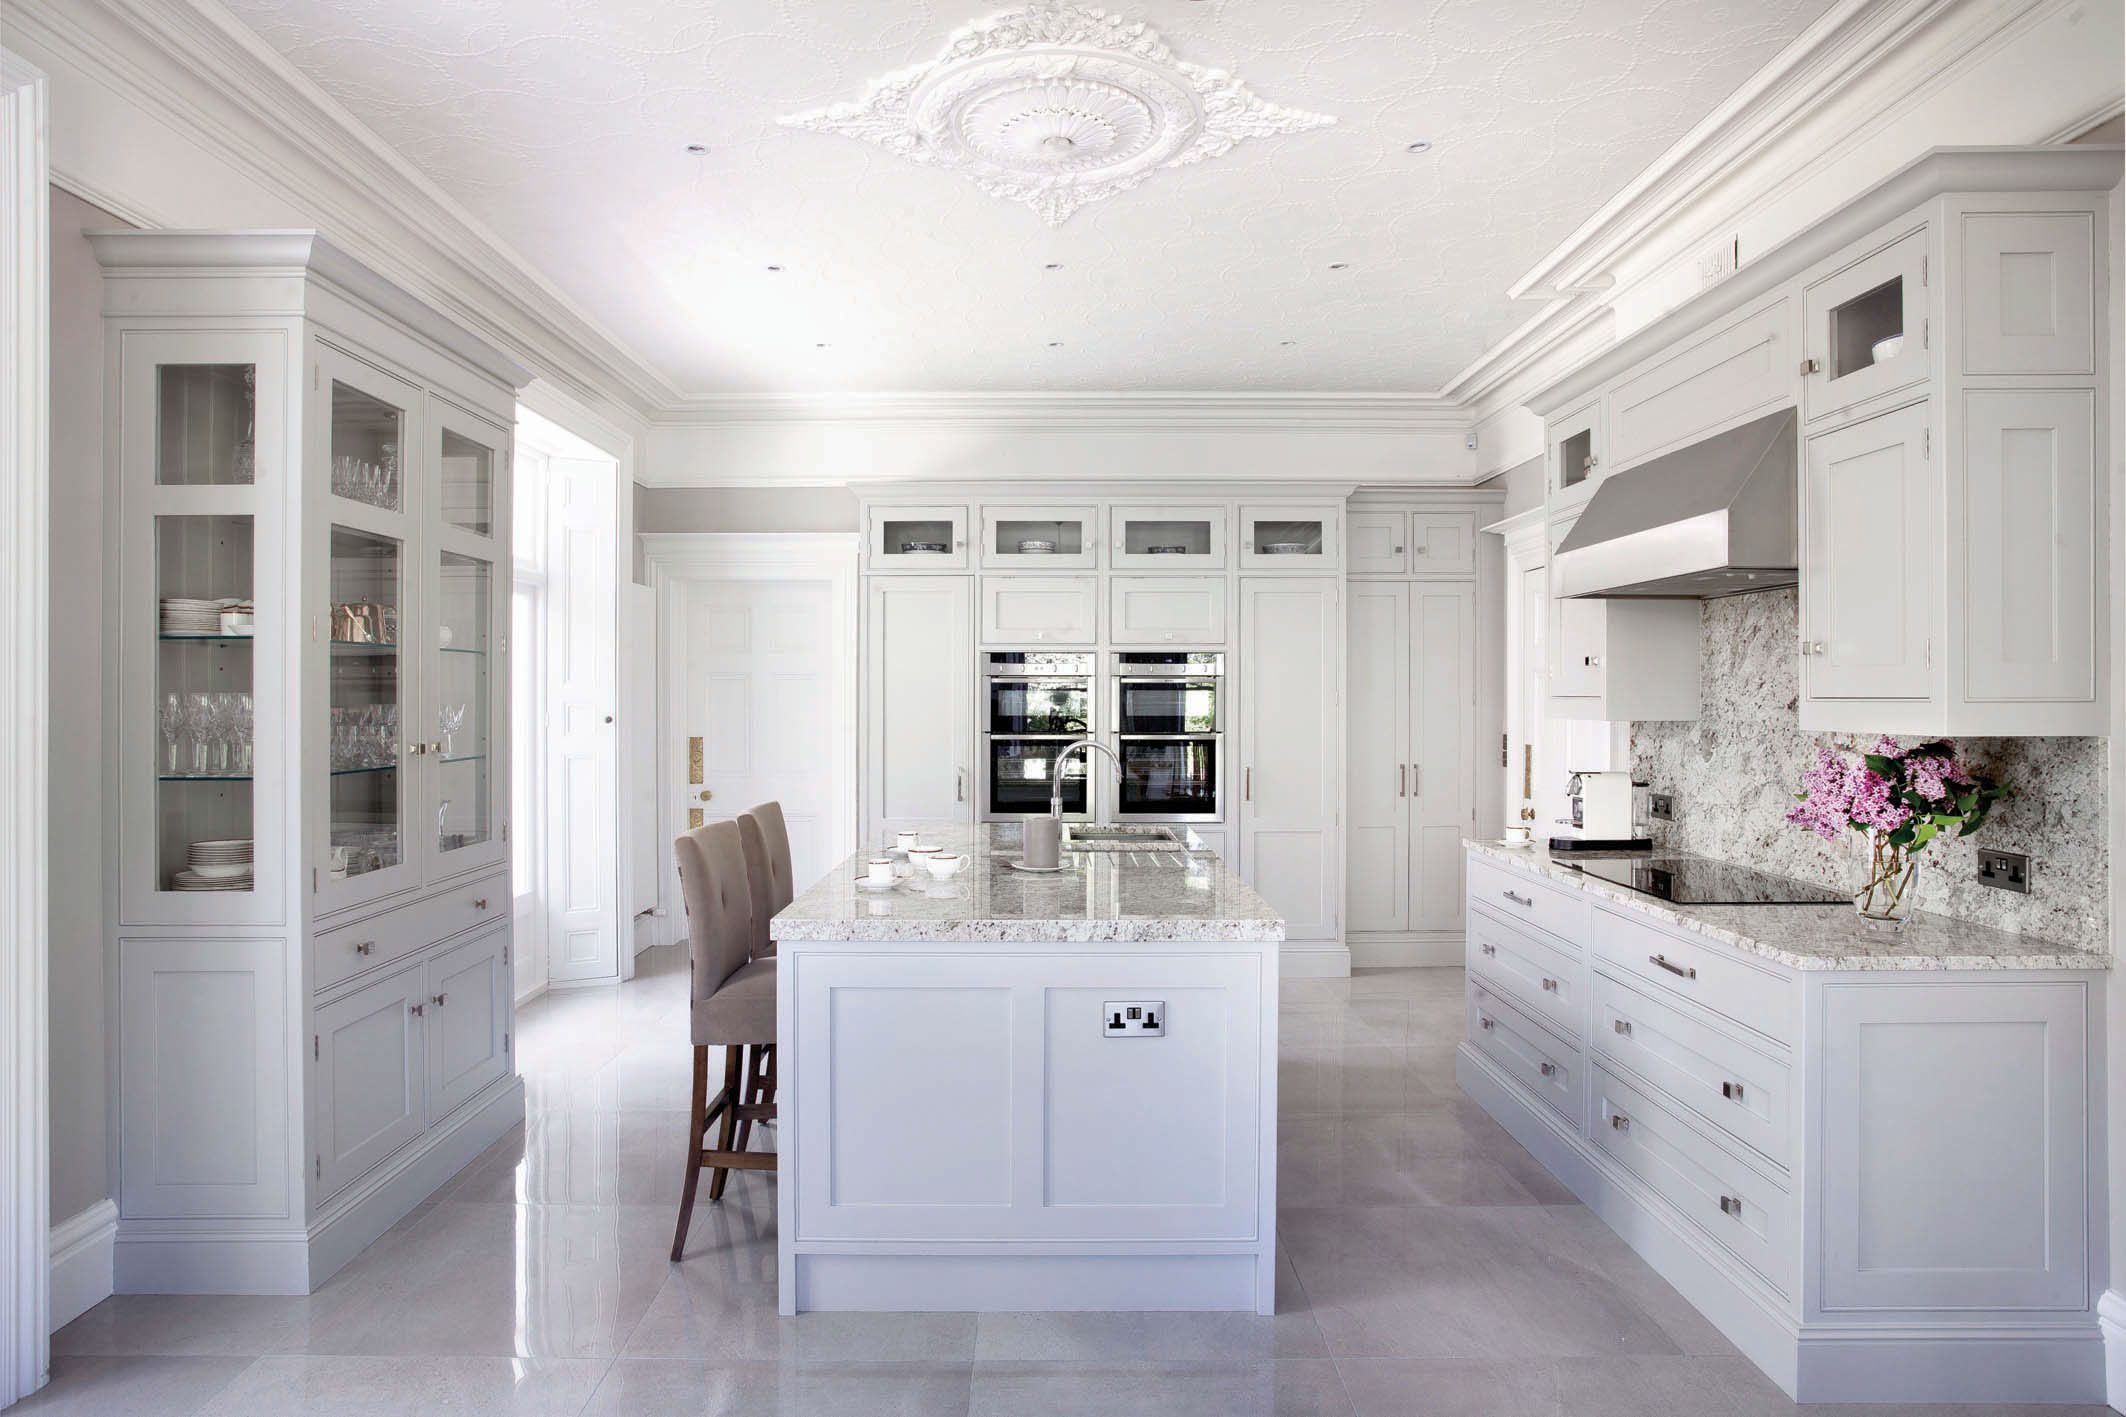 Bespoke inframe Waterford kitchen   O\'Connors of Drumleck   Kitchen ...